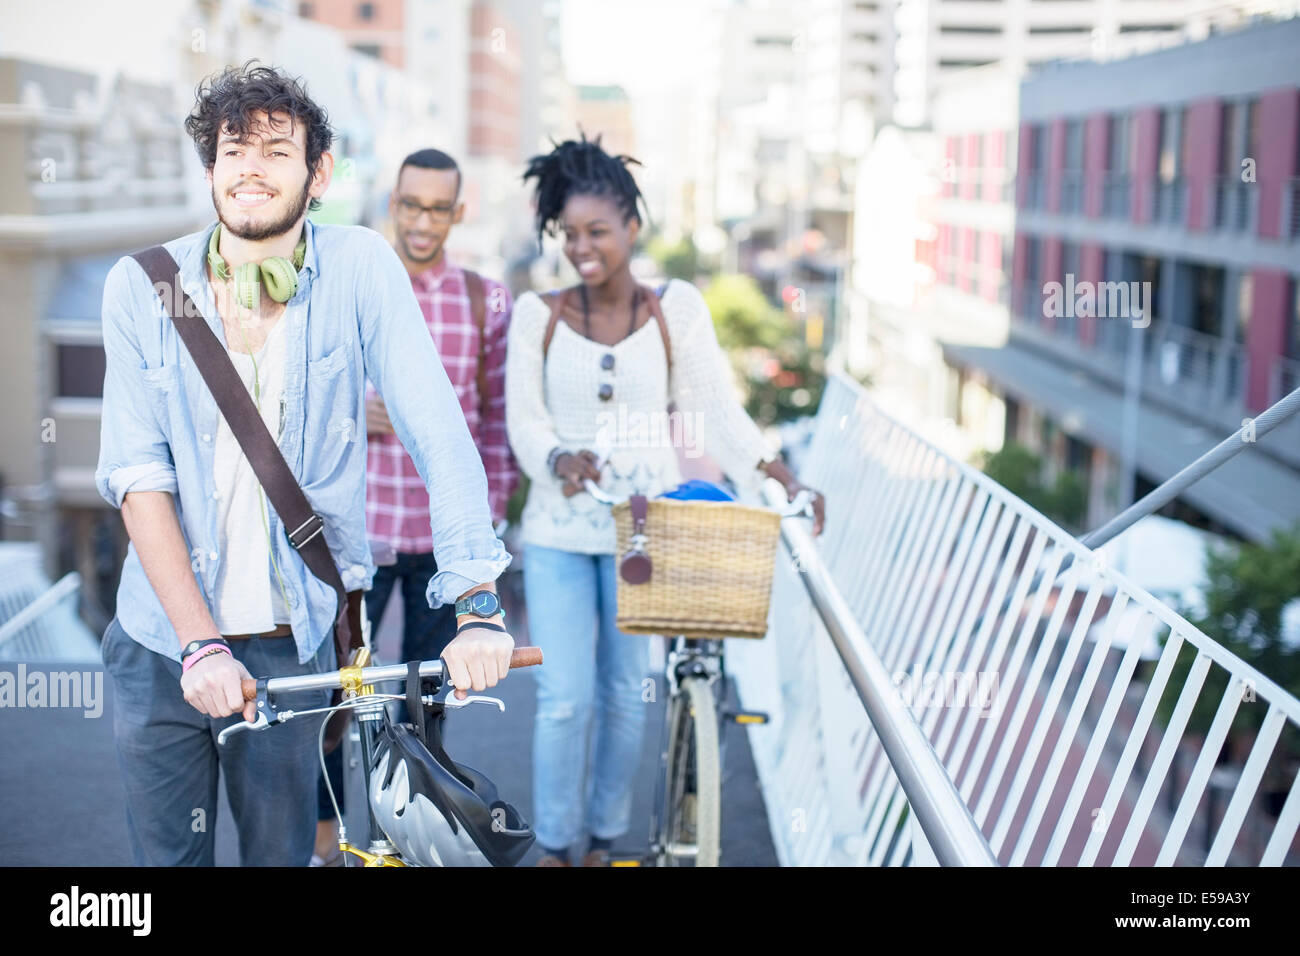 Friends pushing bicycles on city street - Stock Image